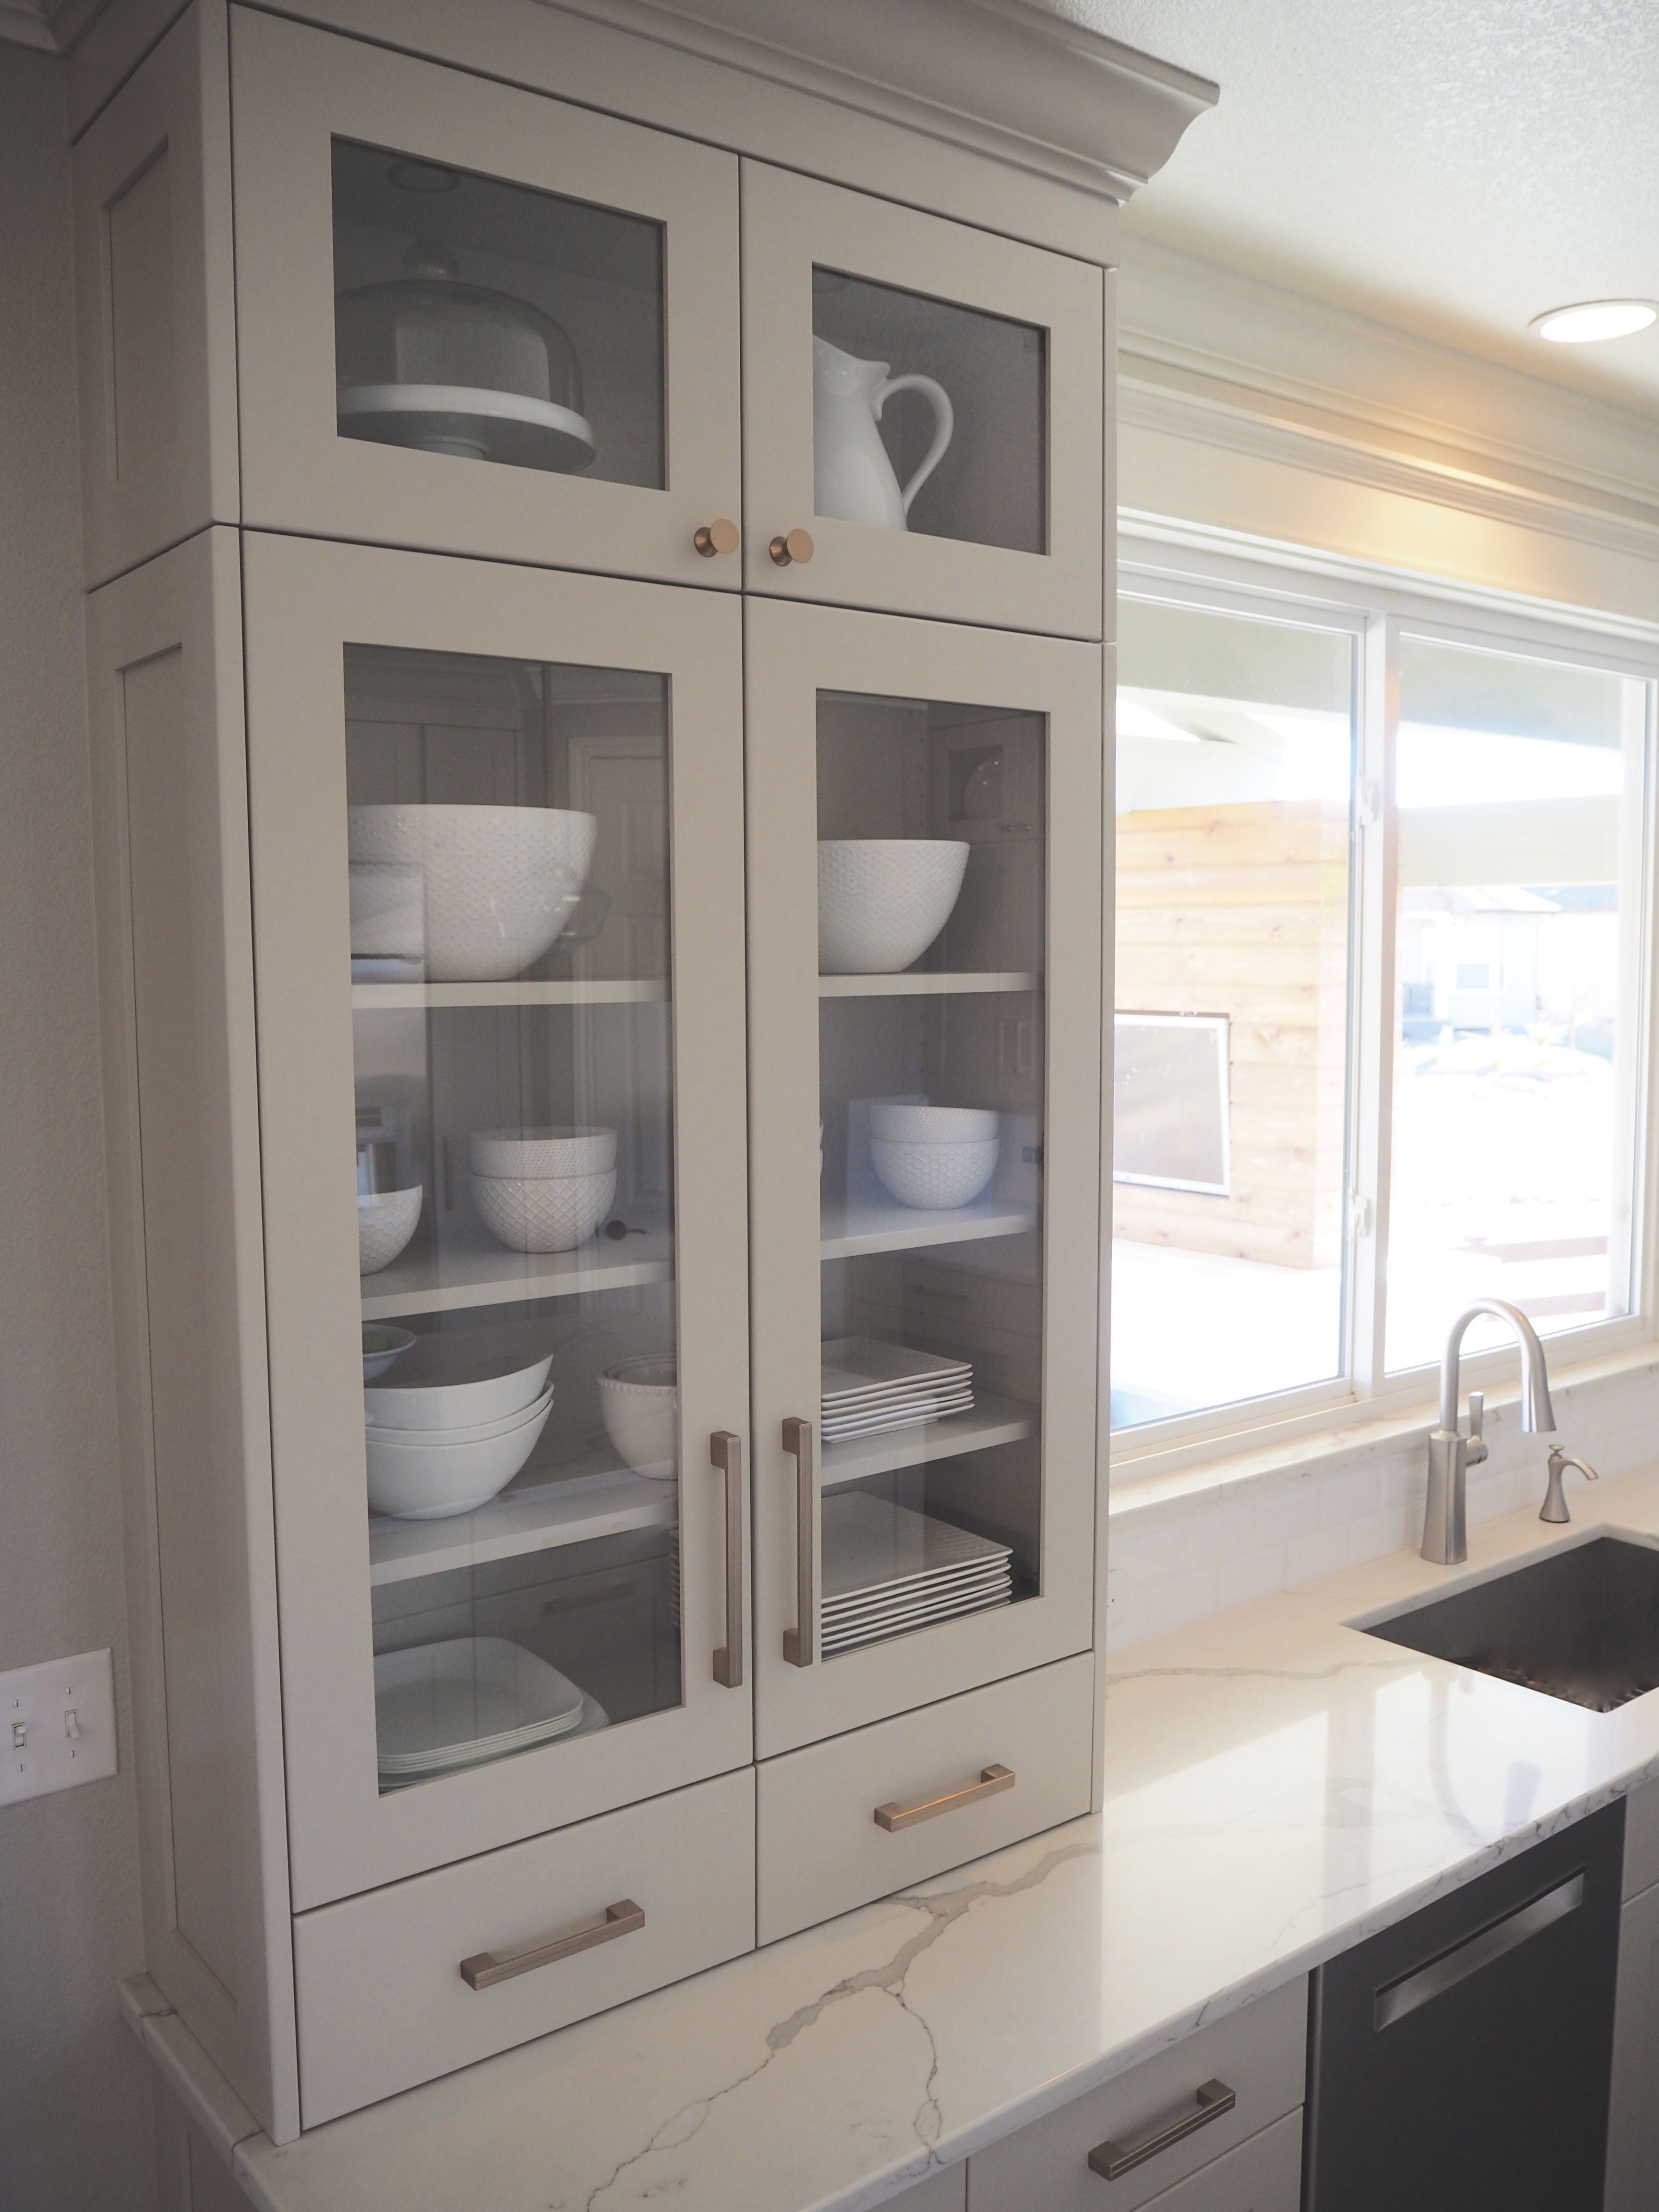 Built In Modern Dish Cabinet Glass Front Shaker Cabinet Revere Pewter Gold Best Kitchen Cabinets Kitchen Design Modern White Glass Fronted Kitchen Cabinets